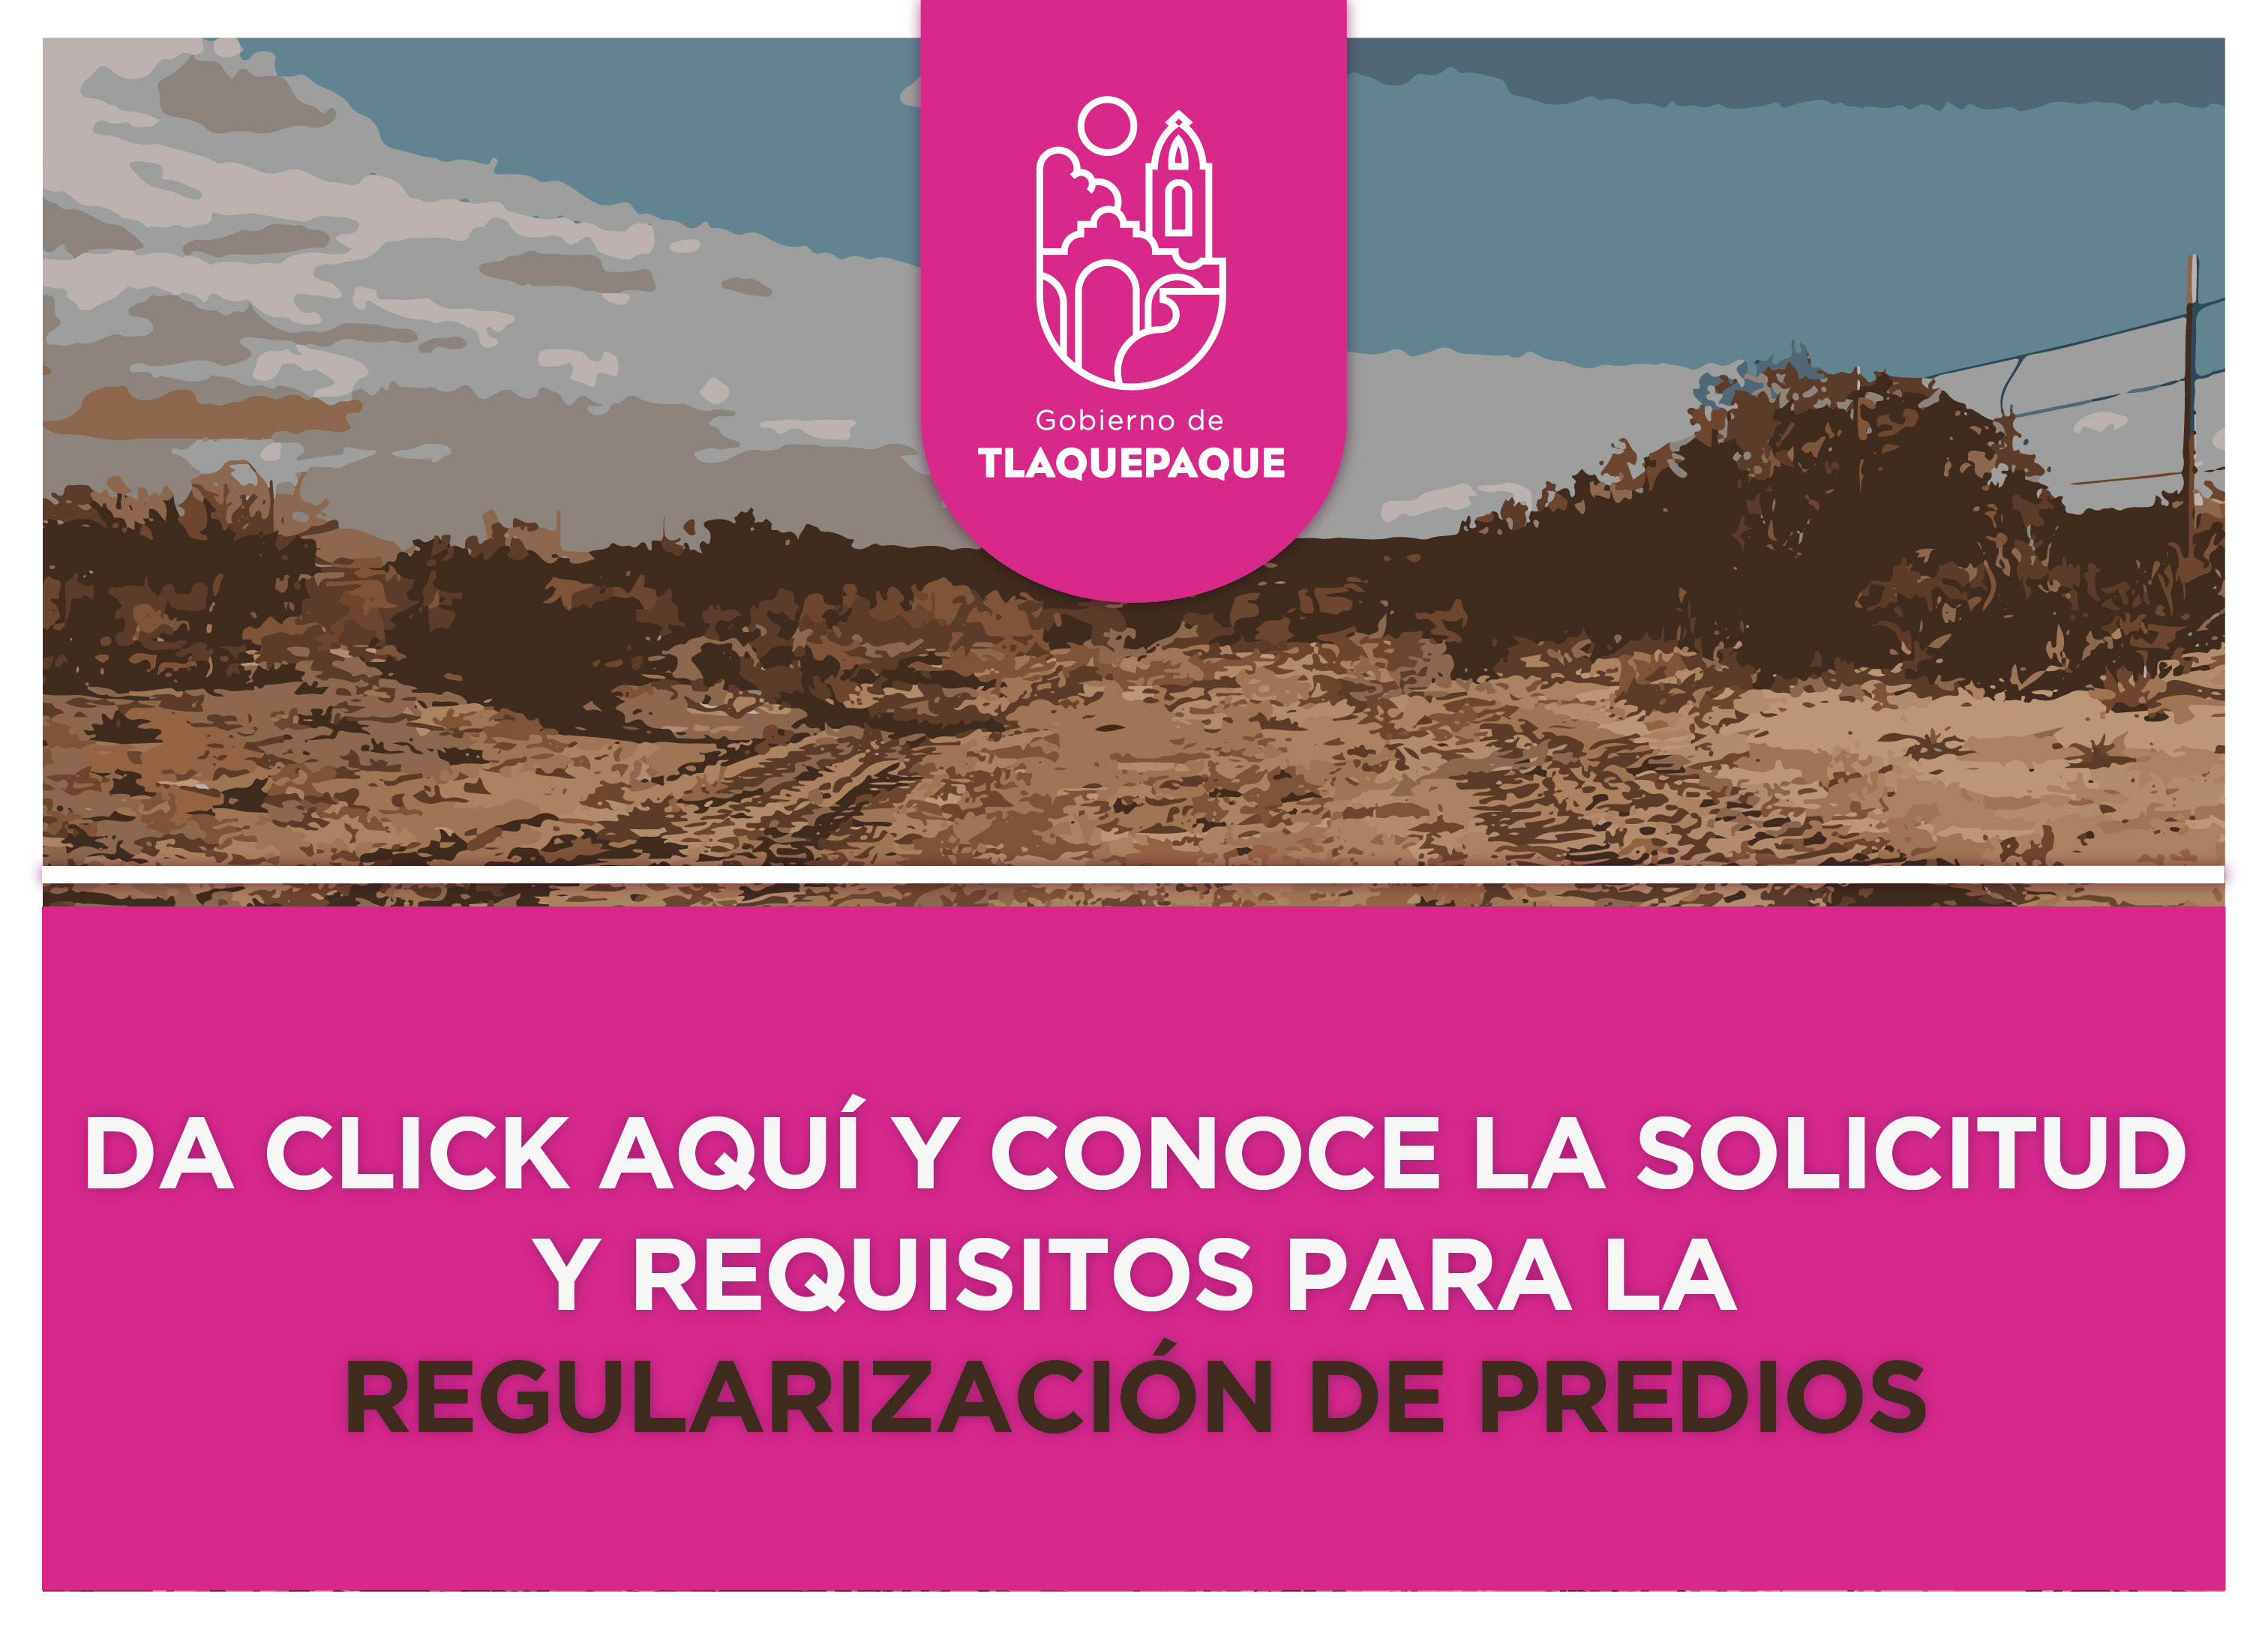 Solicitud y requisitos para la regularización de predios